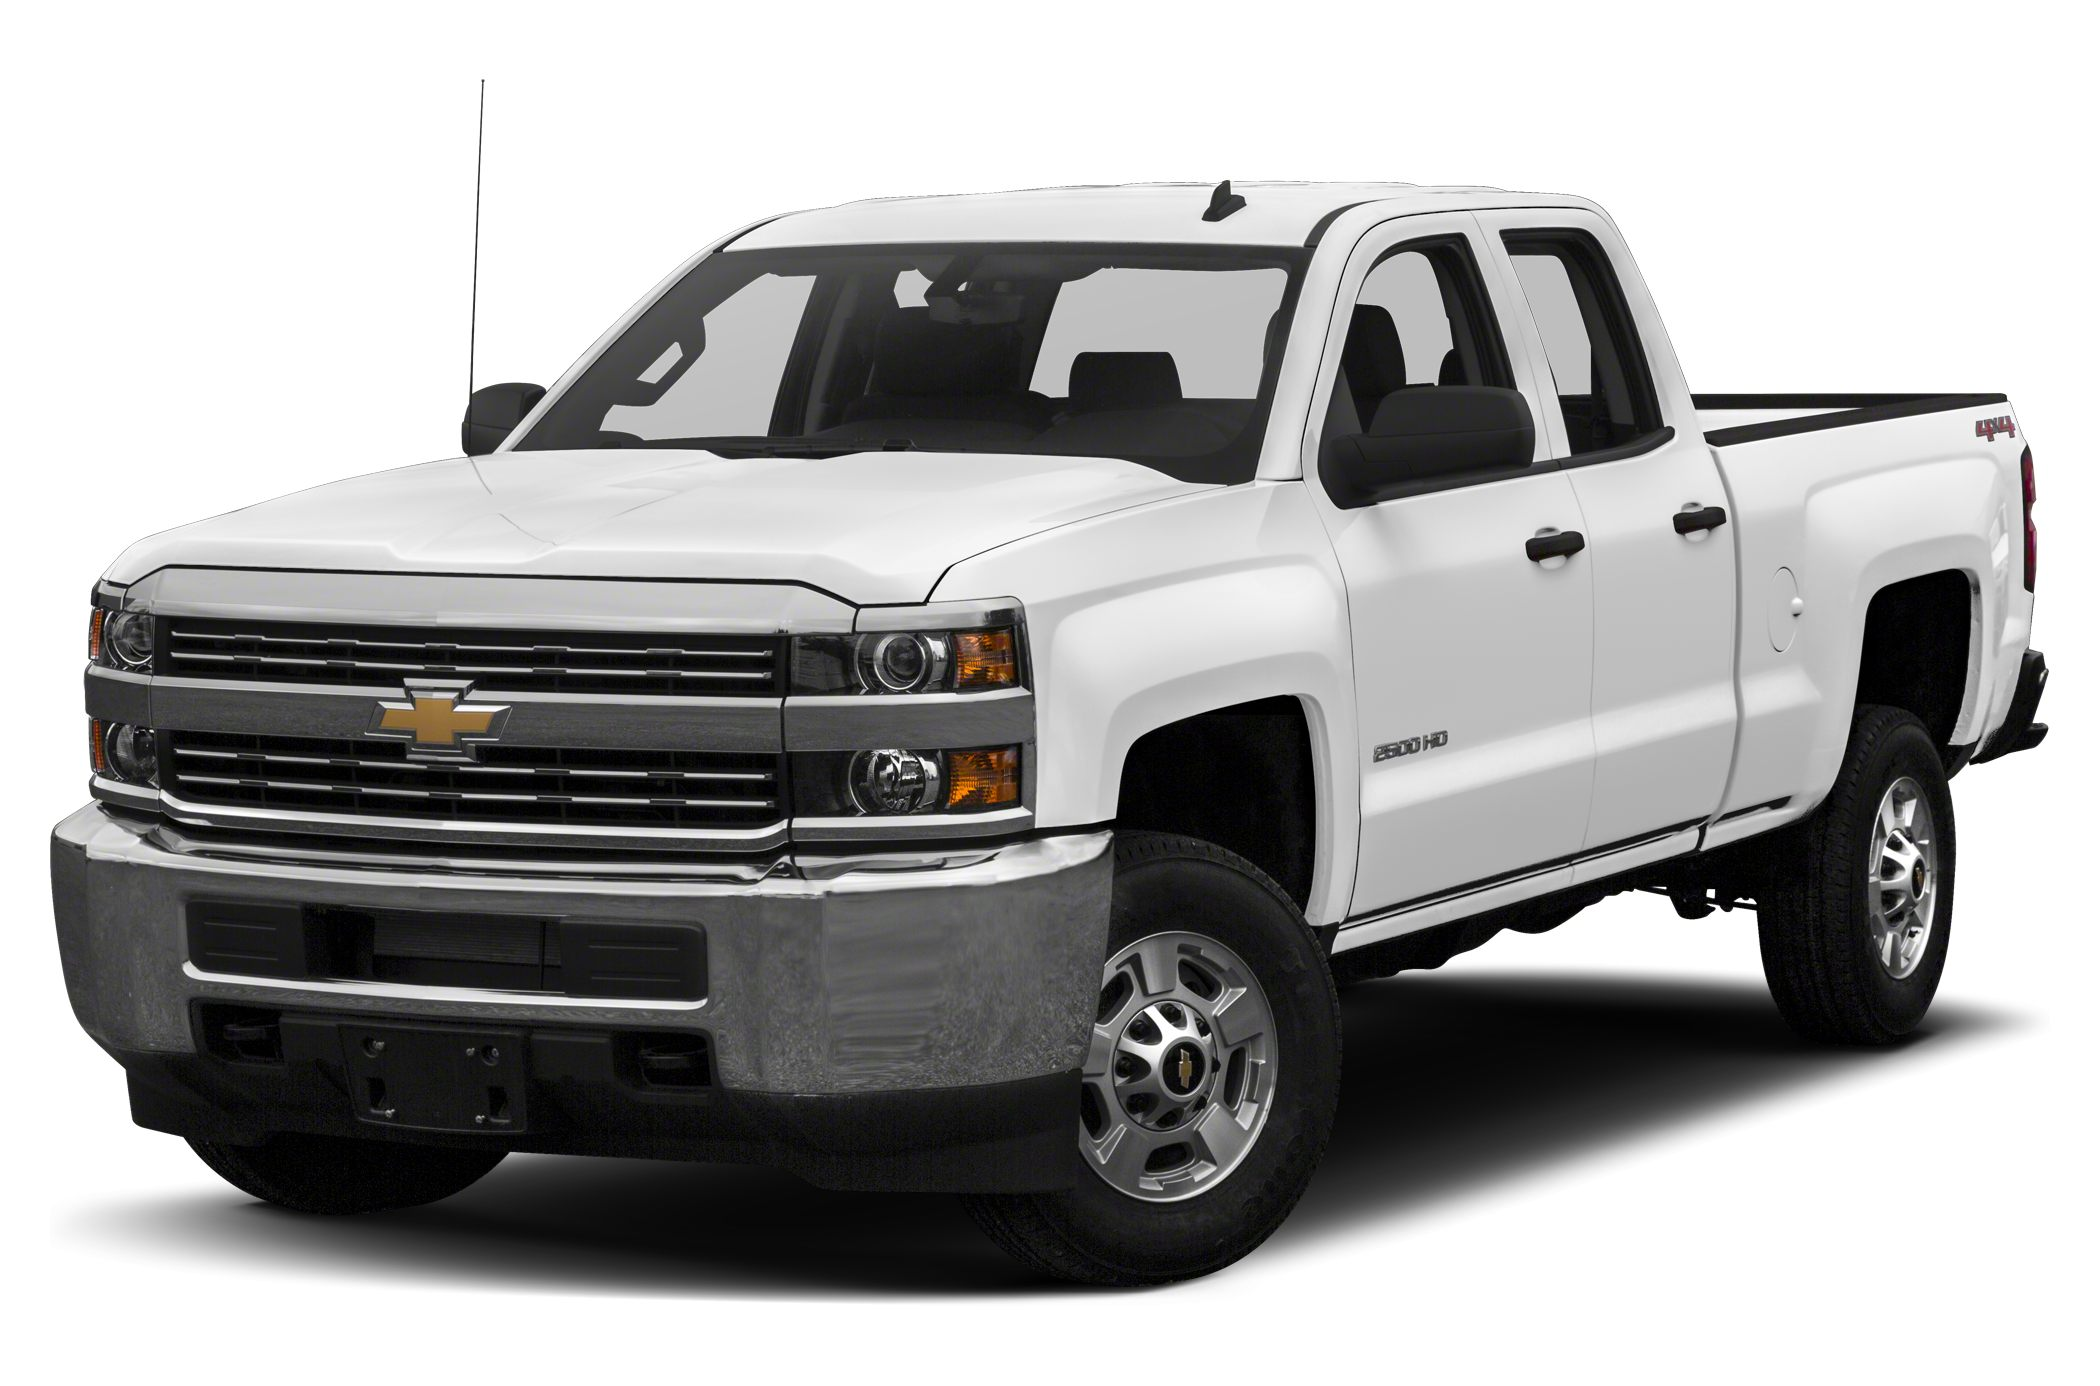 2015 Chevrolet Silverado 2500 LT Extended Cab Pickup for sale in Andover for $54,690 with 0 miles.